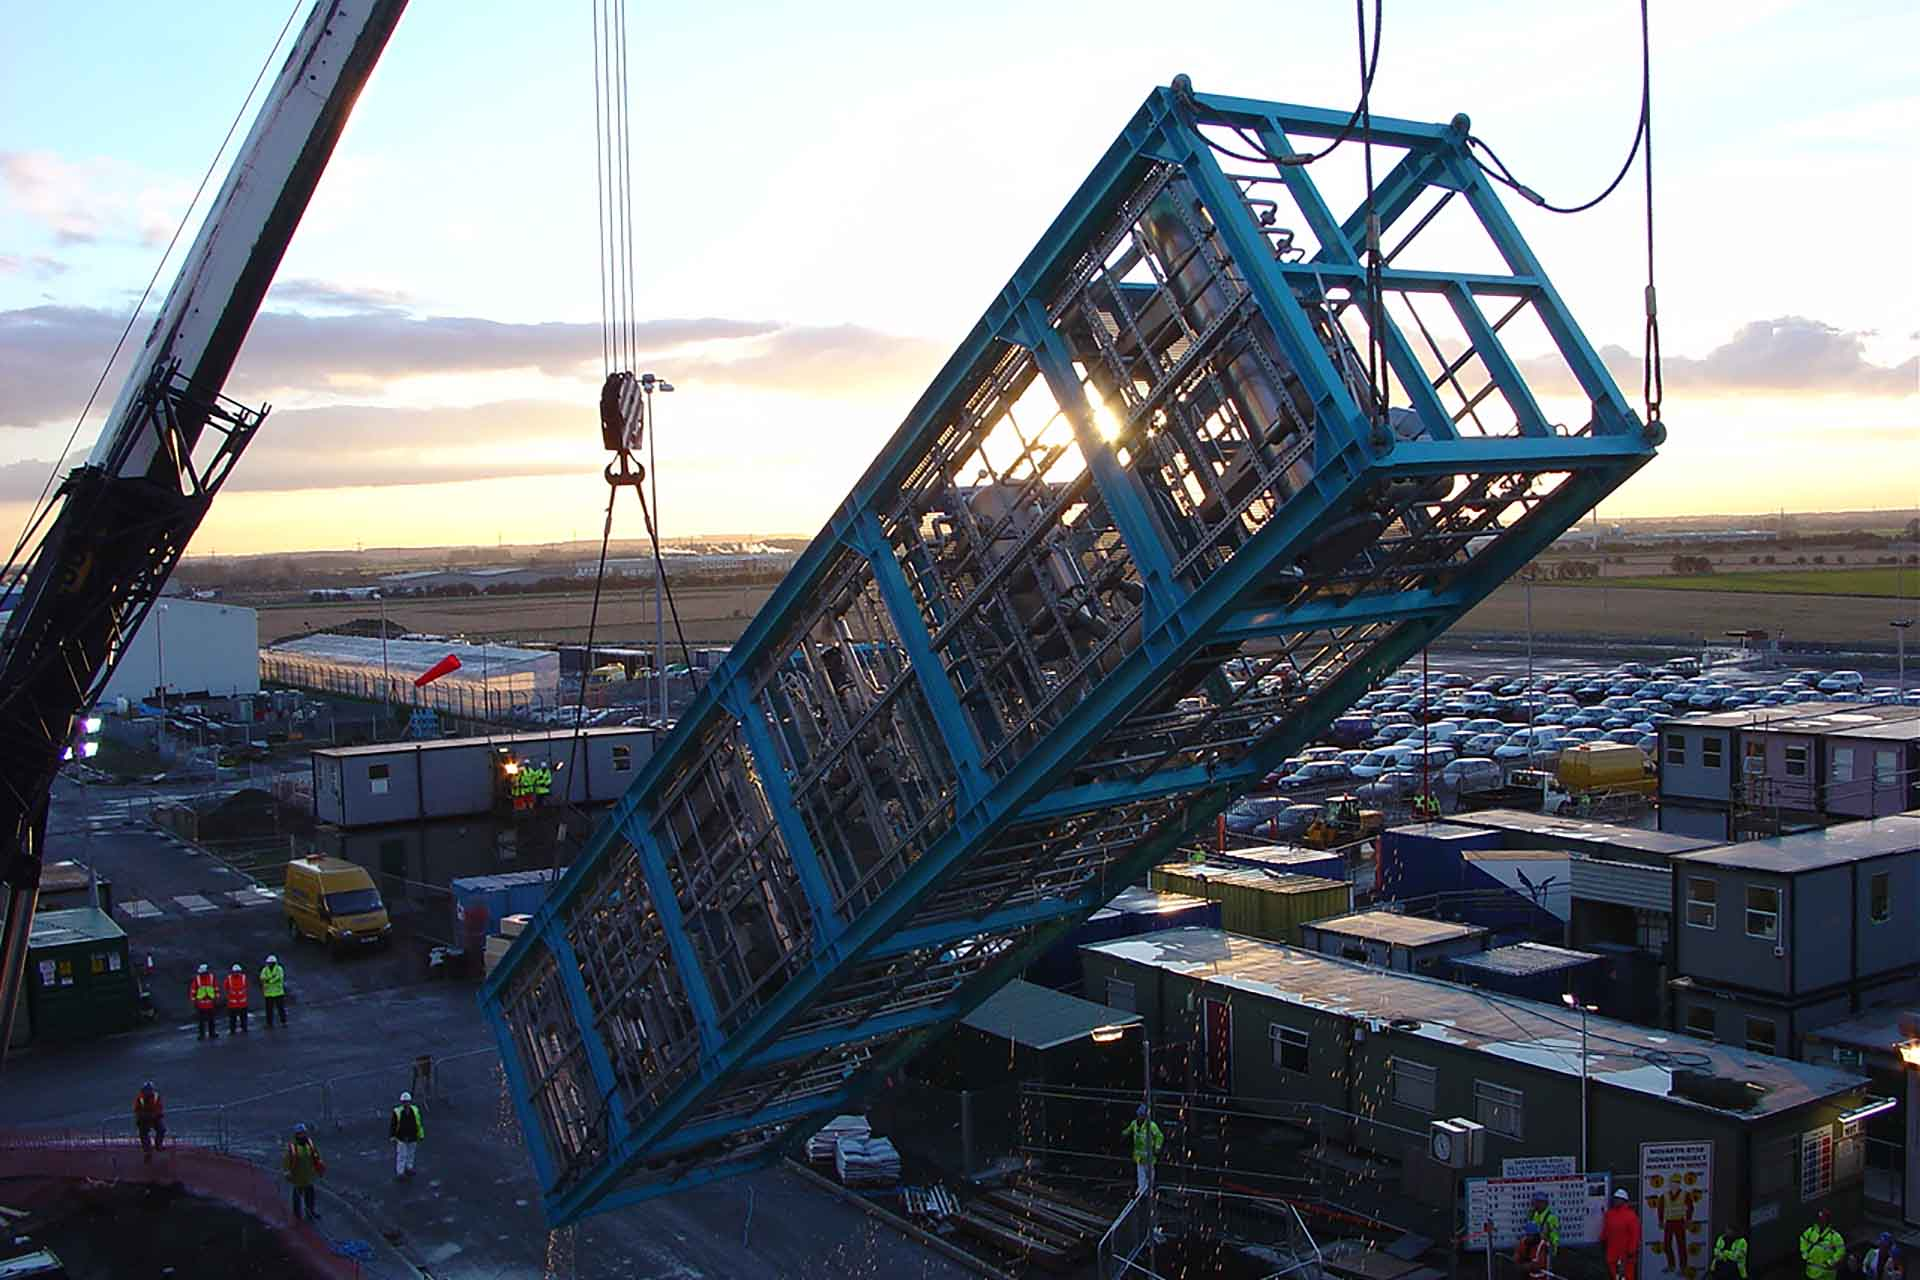 Skid-mounted solvent recovery unit with six floors erected by a crane at a customer's site